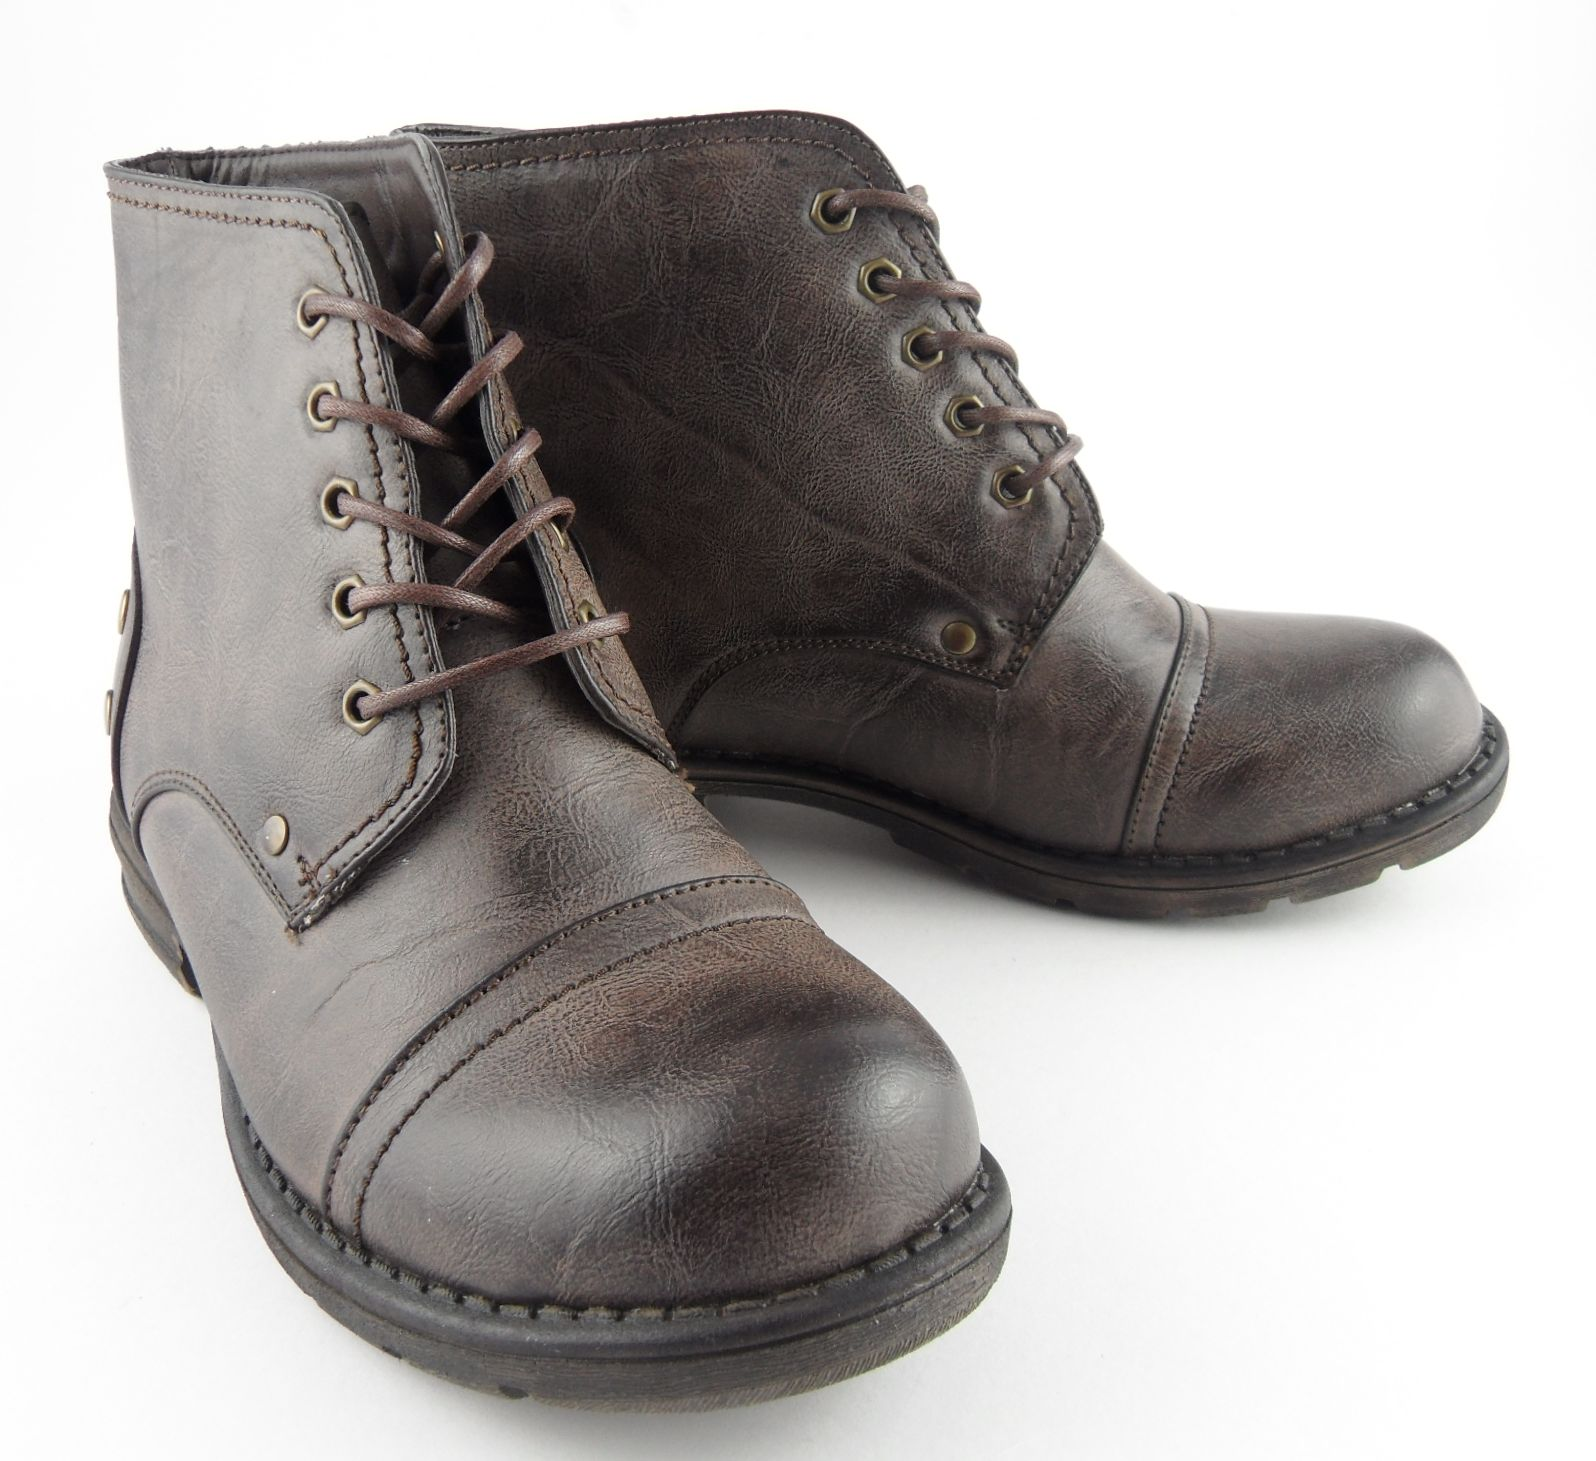 boys brown leather look military army fashion combat boots